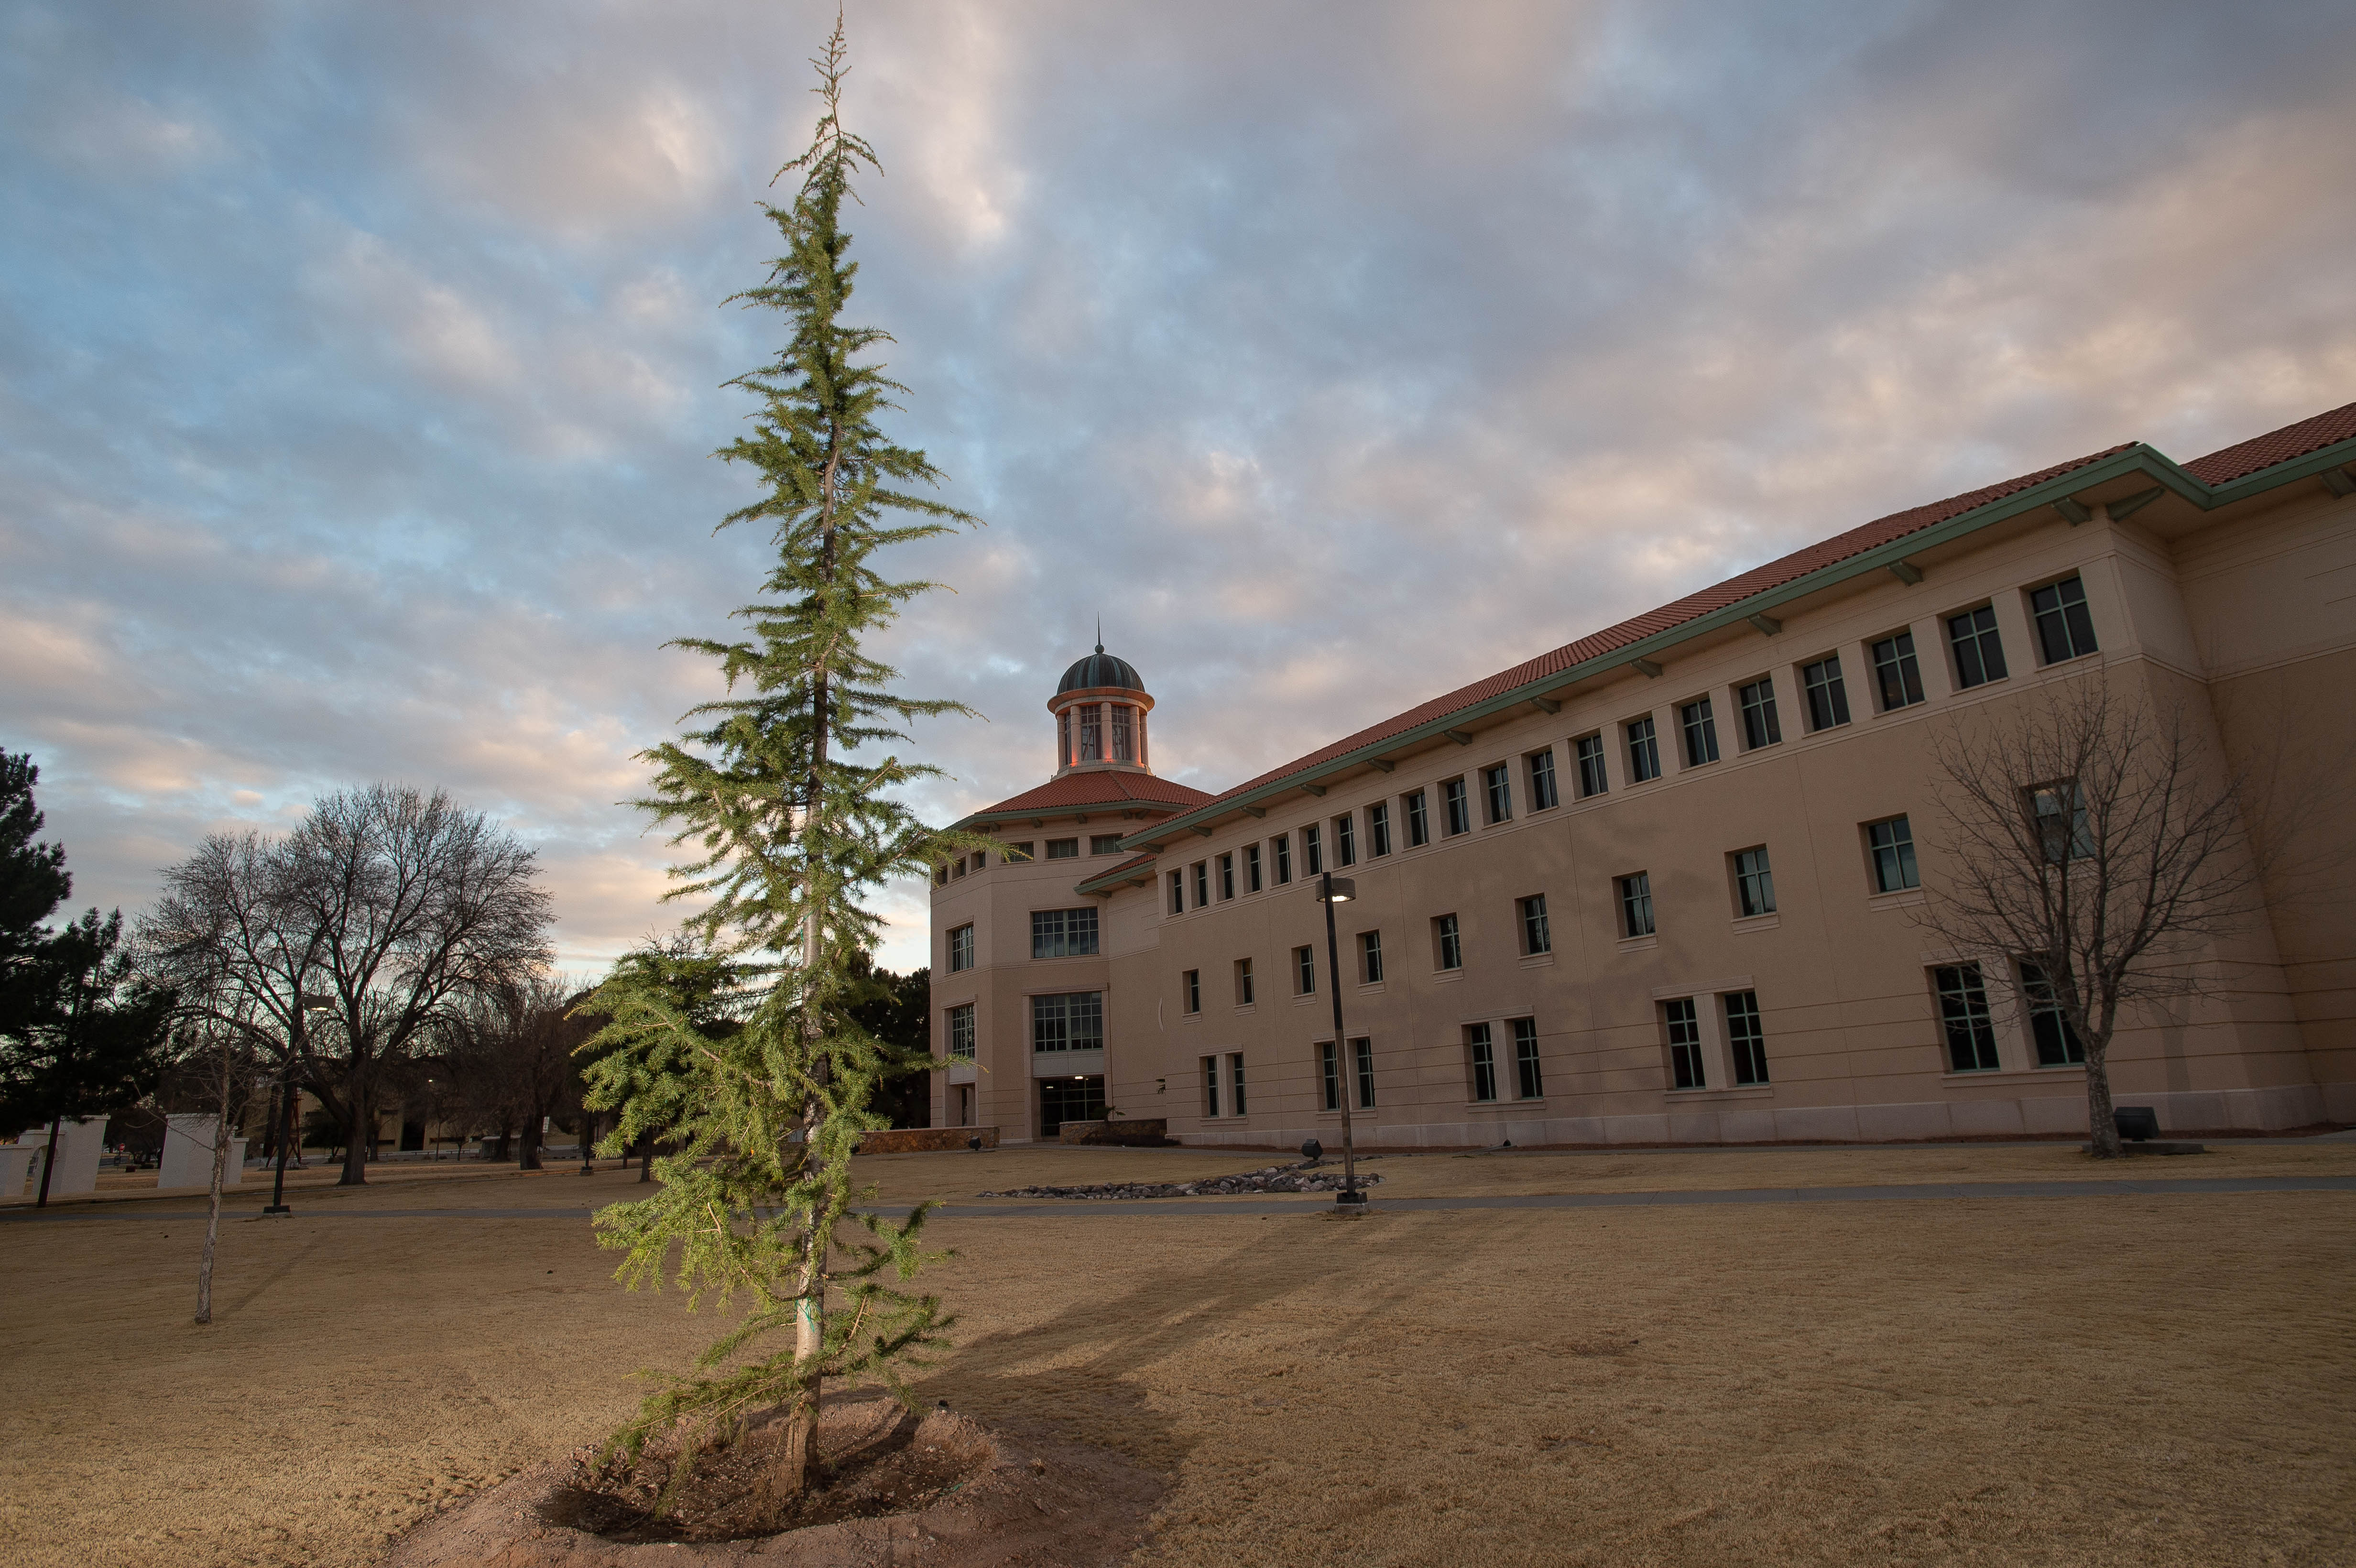 Couple donates 12 trees to NMSU campus to honor storytellers of the area | Las Cruces Sun